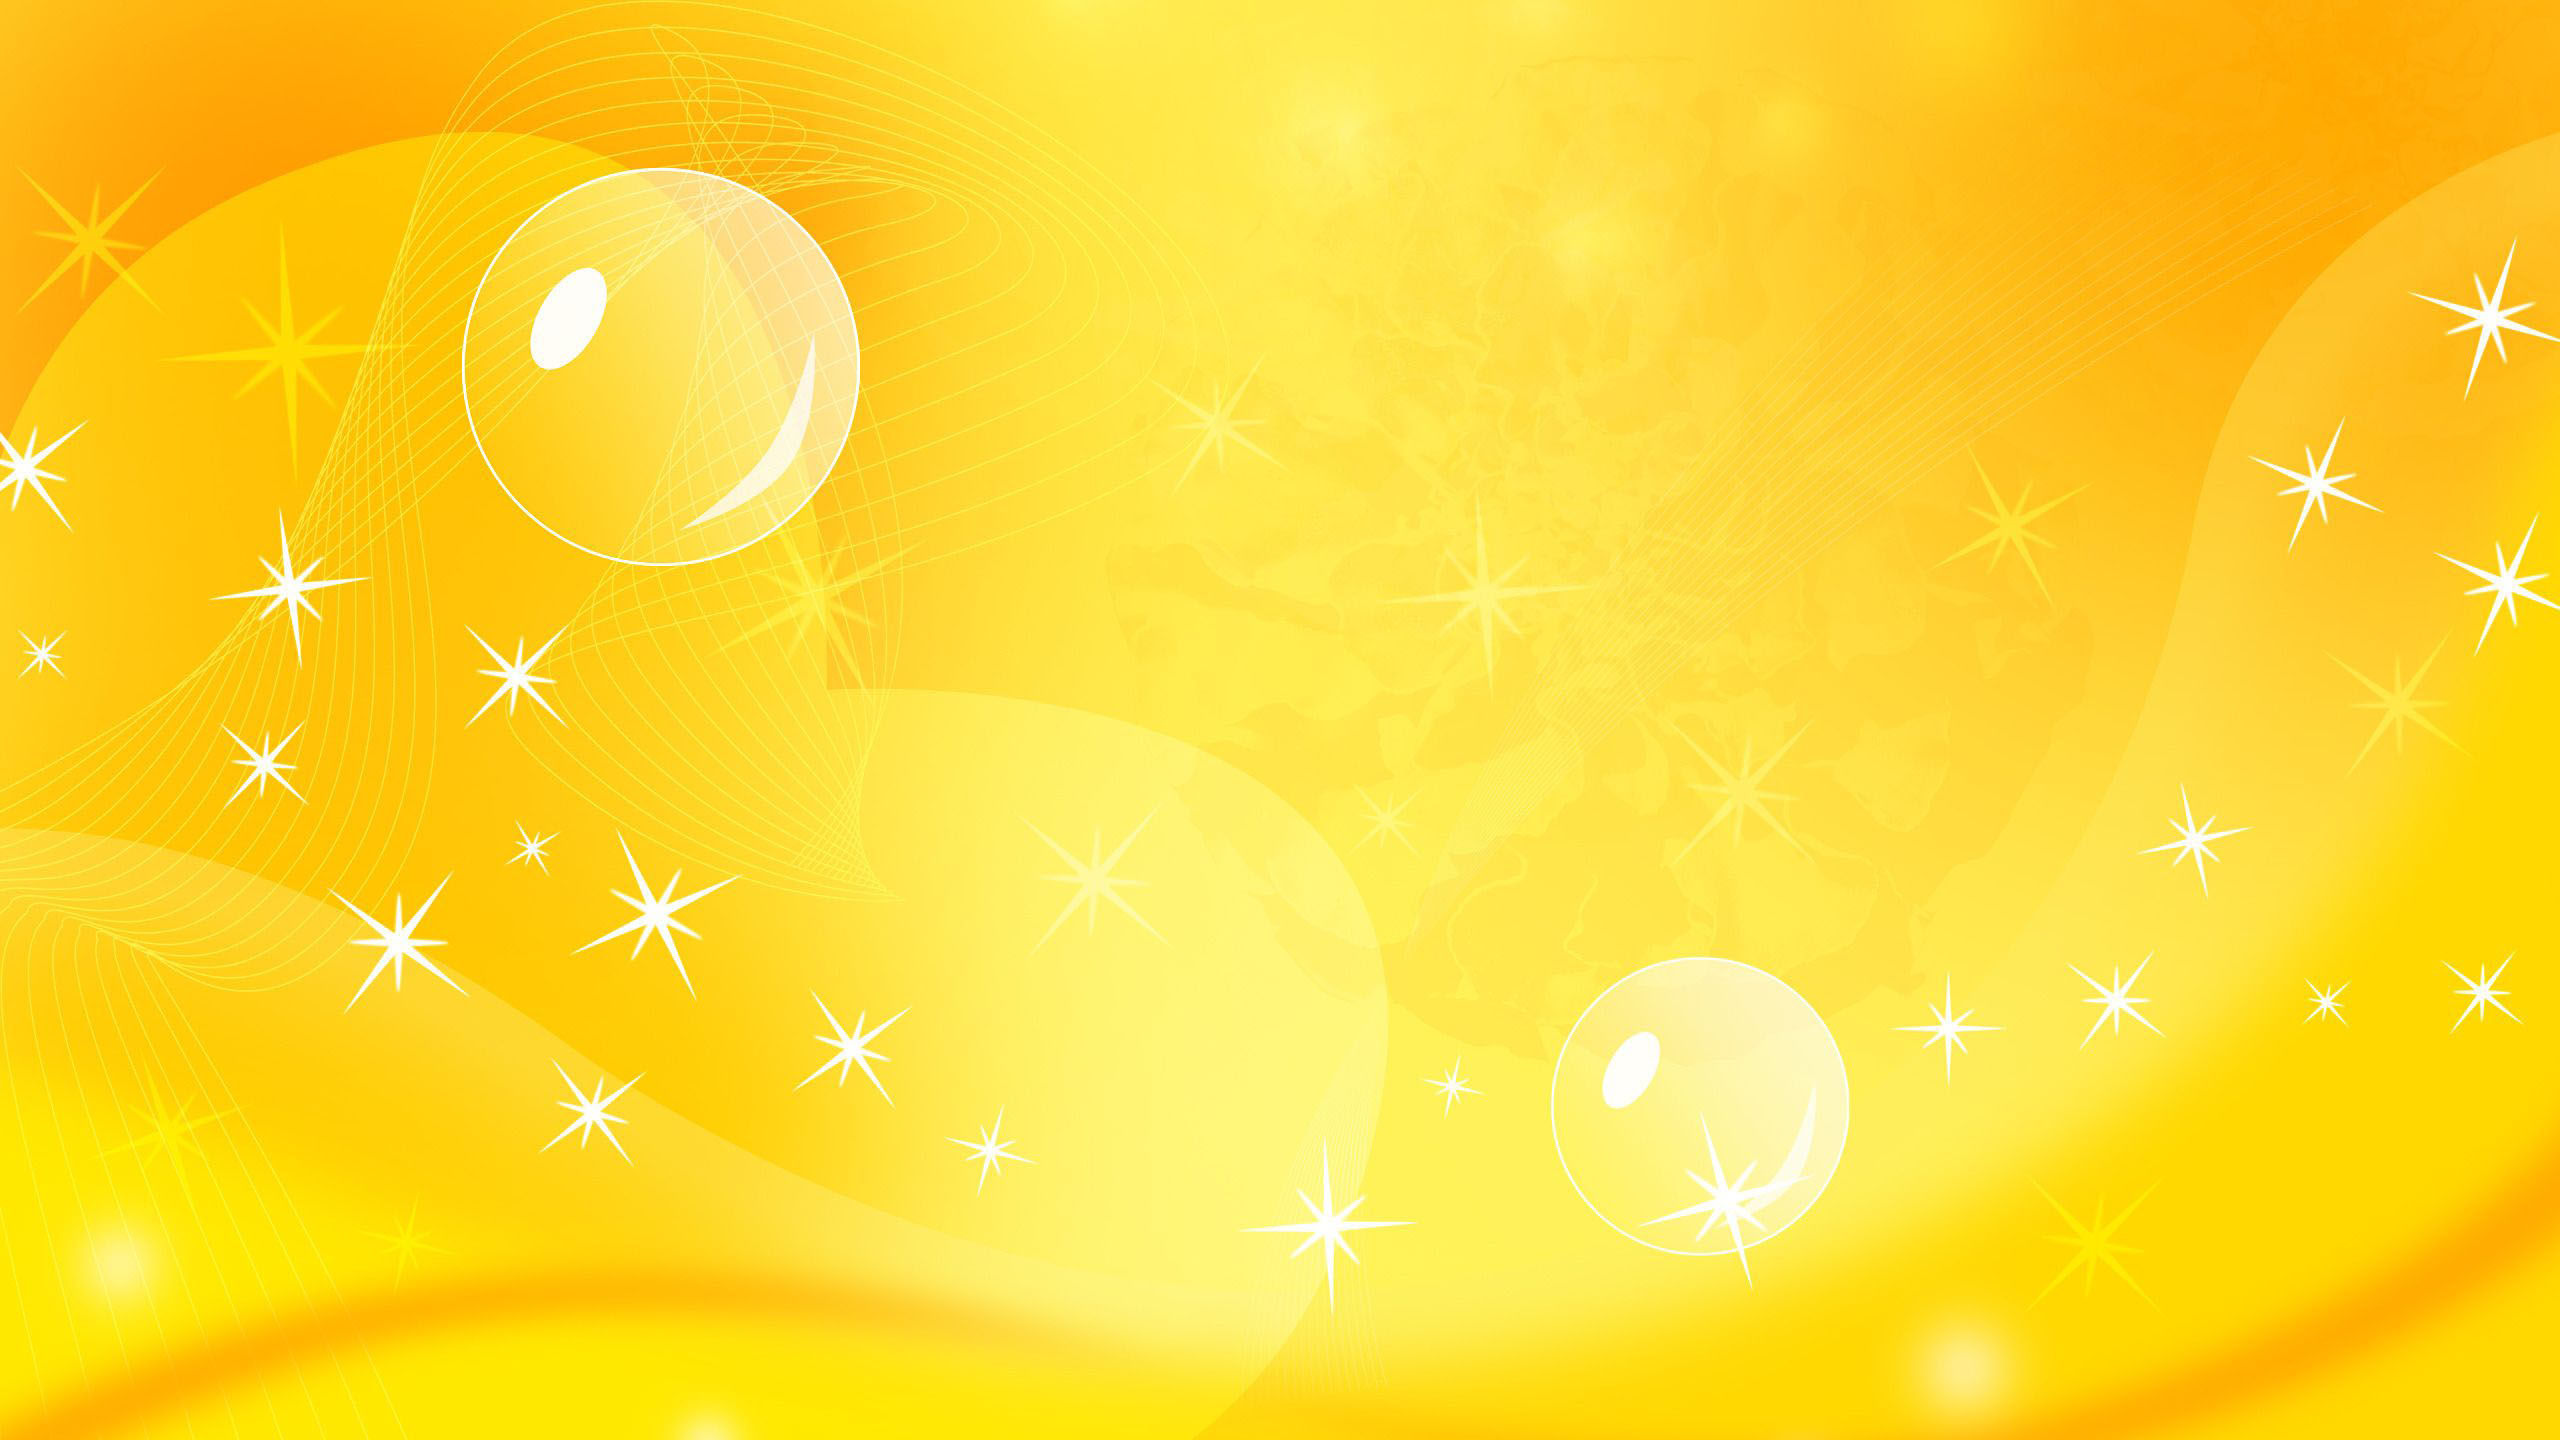 sparkling stars in yellow background hd yellow wallpapers